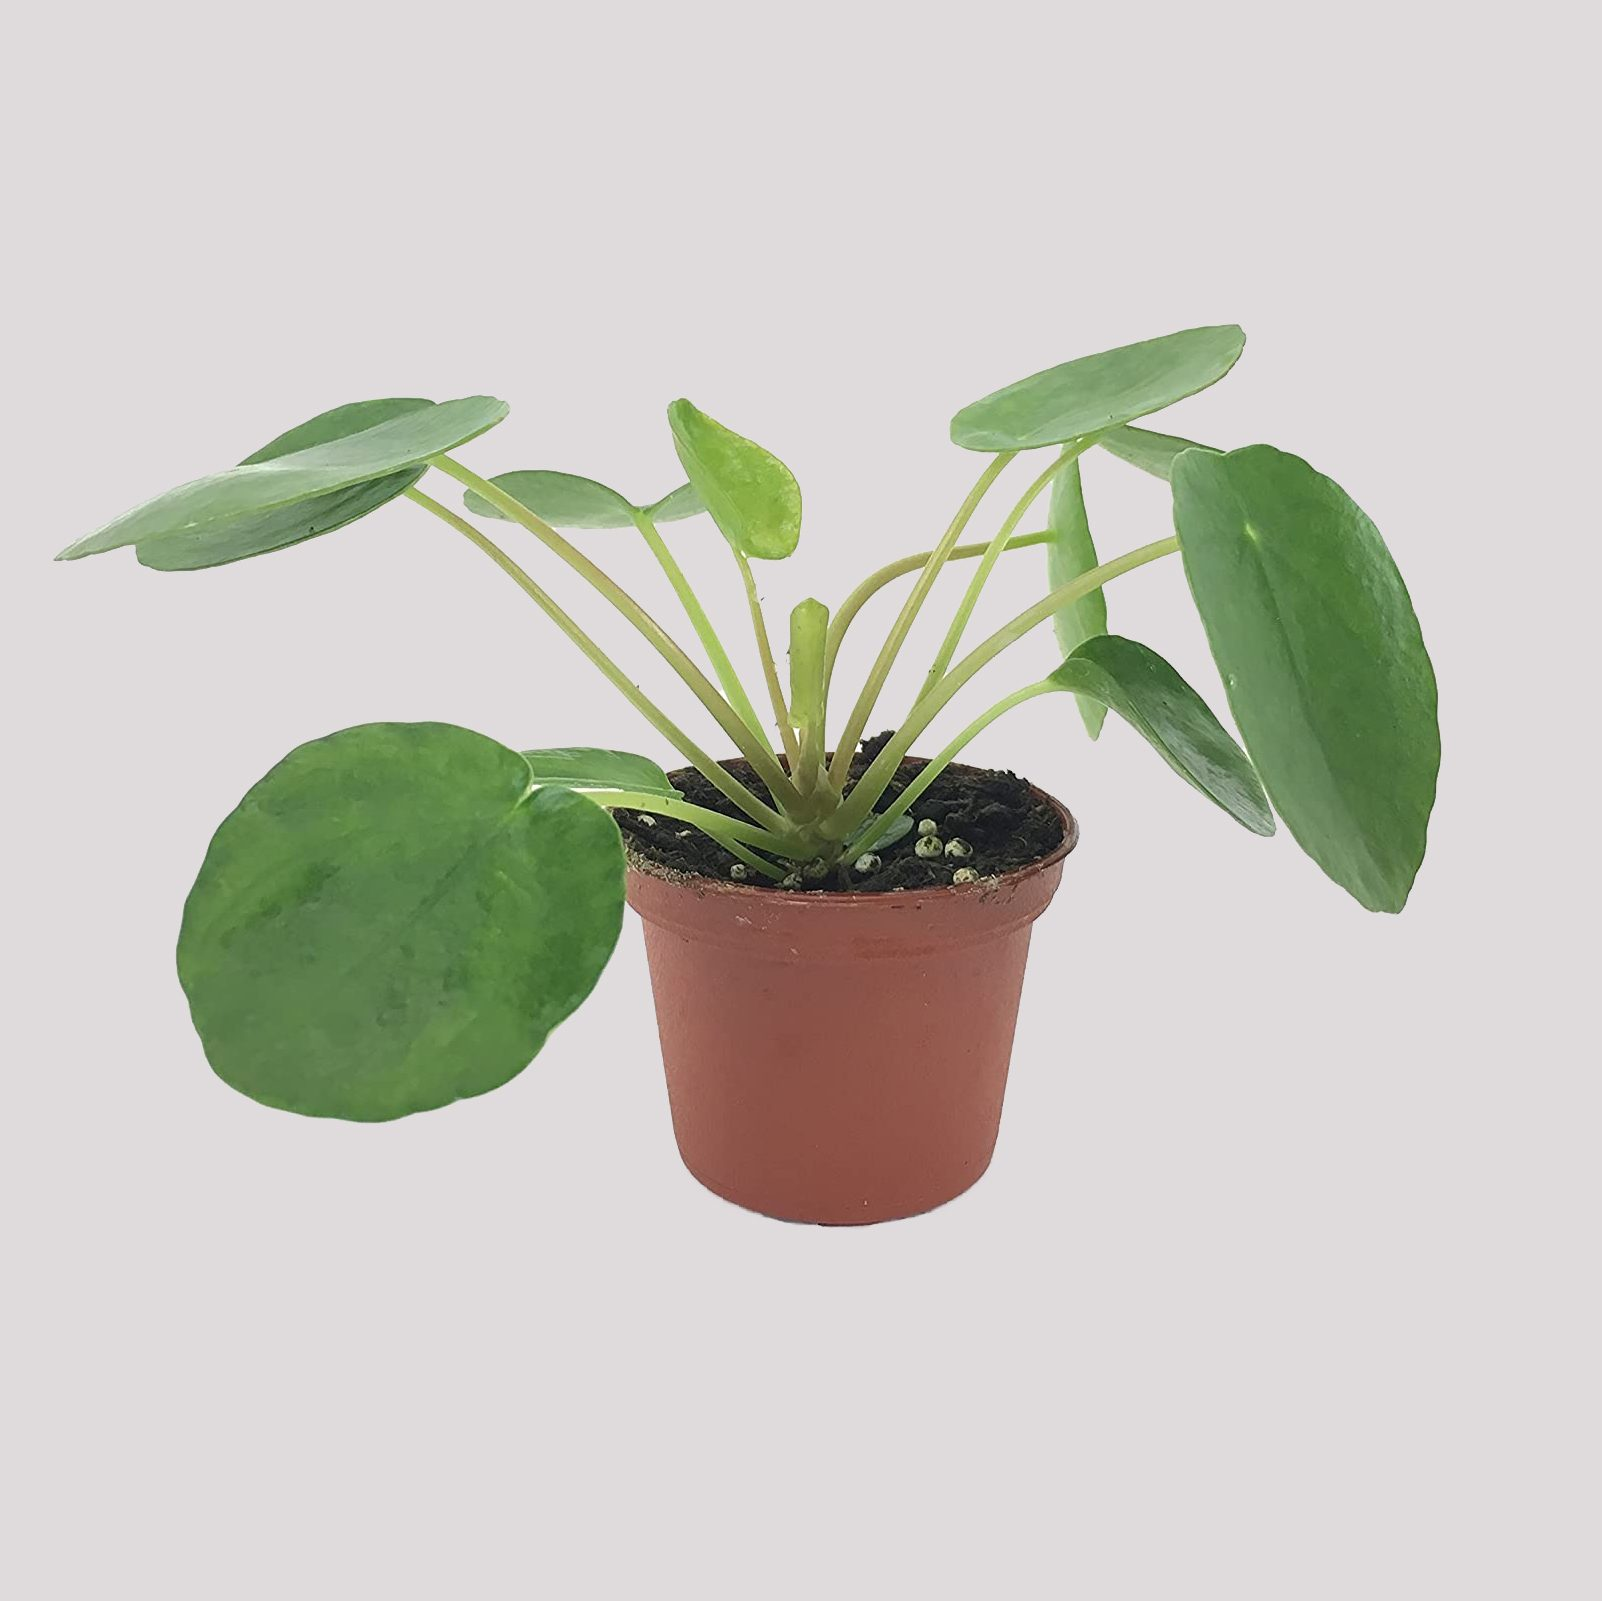 Chinese money plant house plants